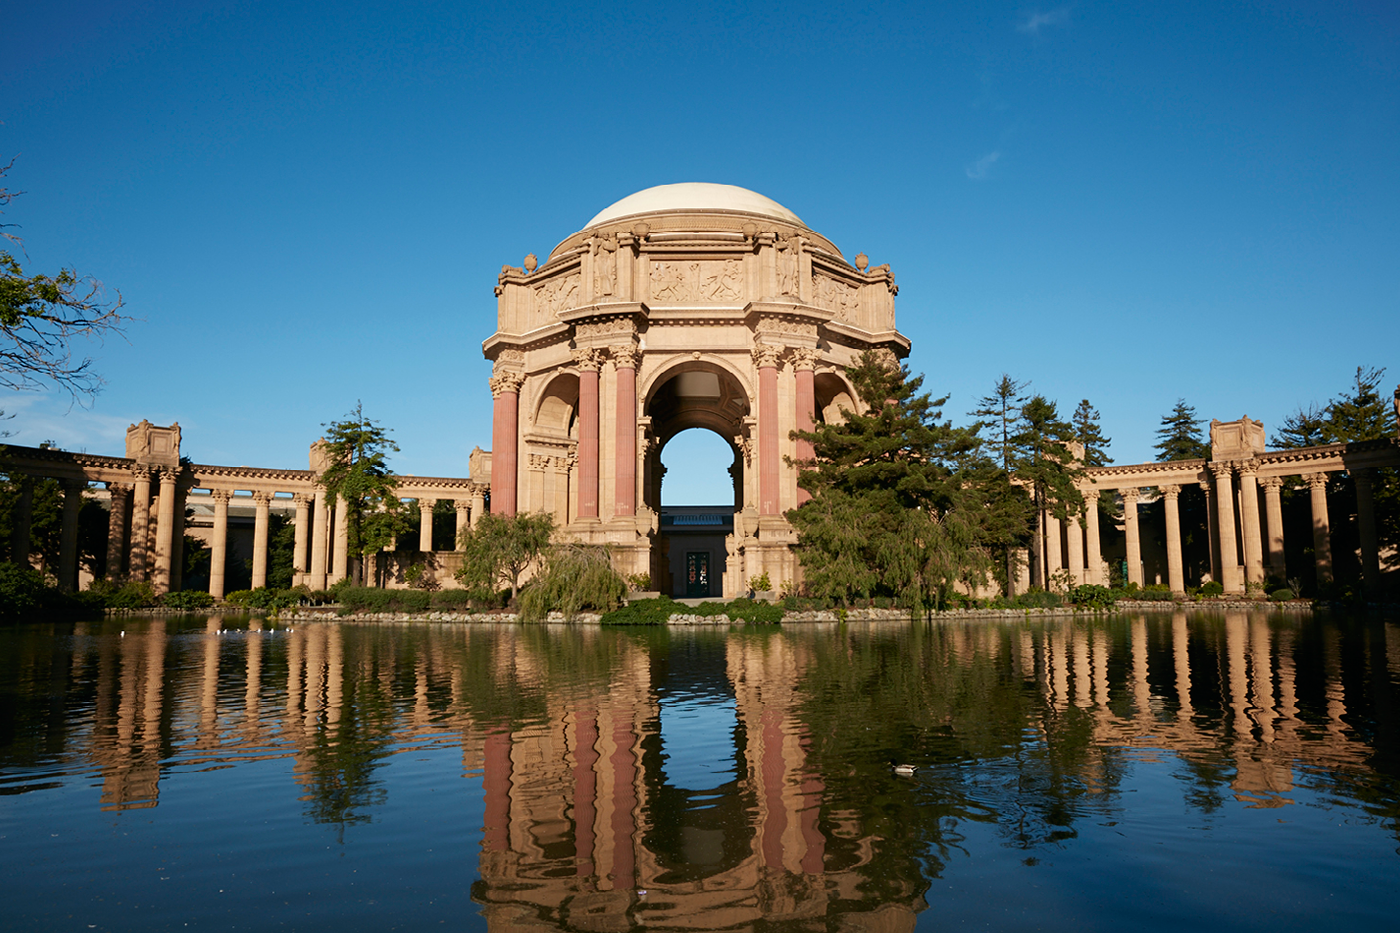 The Venue at the Palace of Fine Arts